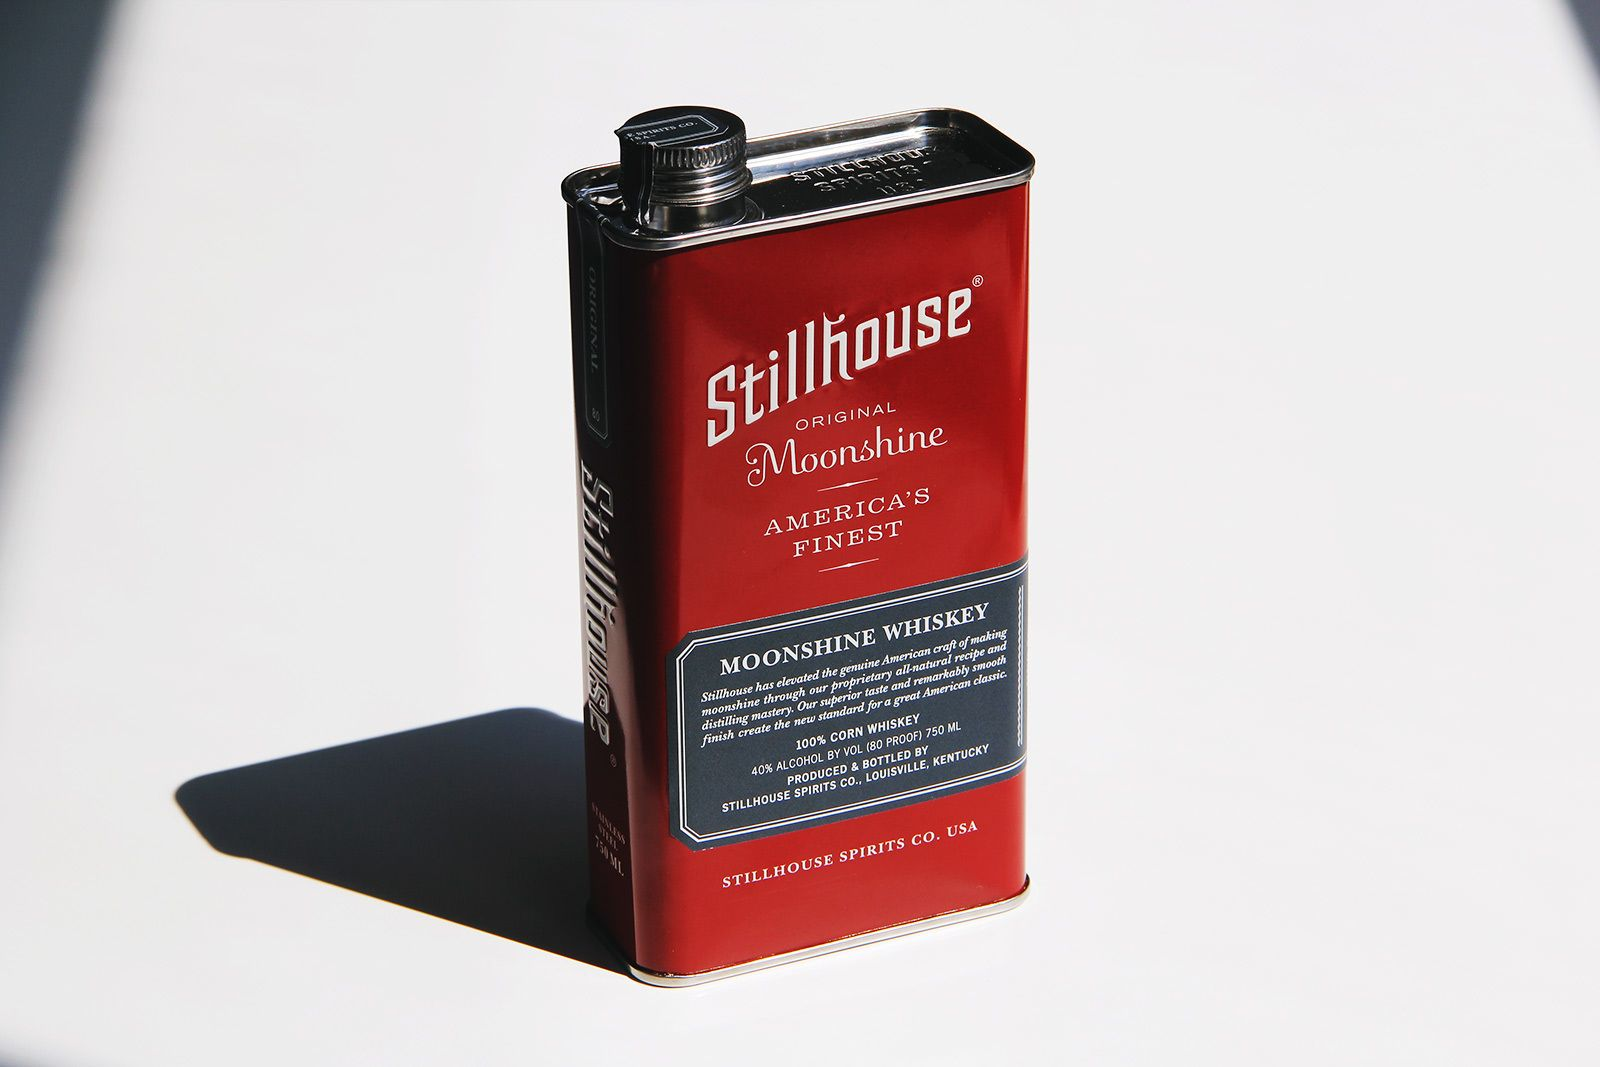 Stillhouse Moonshine Whiskey Moonshine Moonshine Whiskey